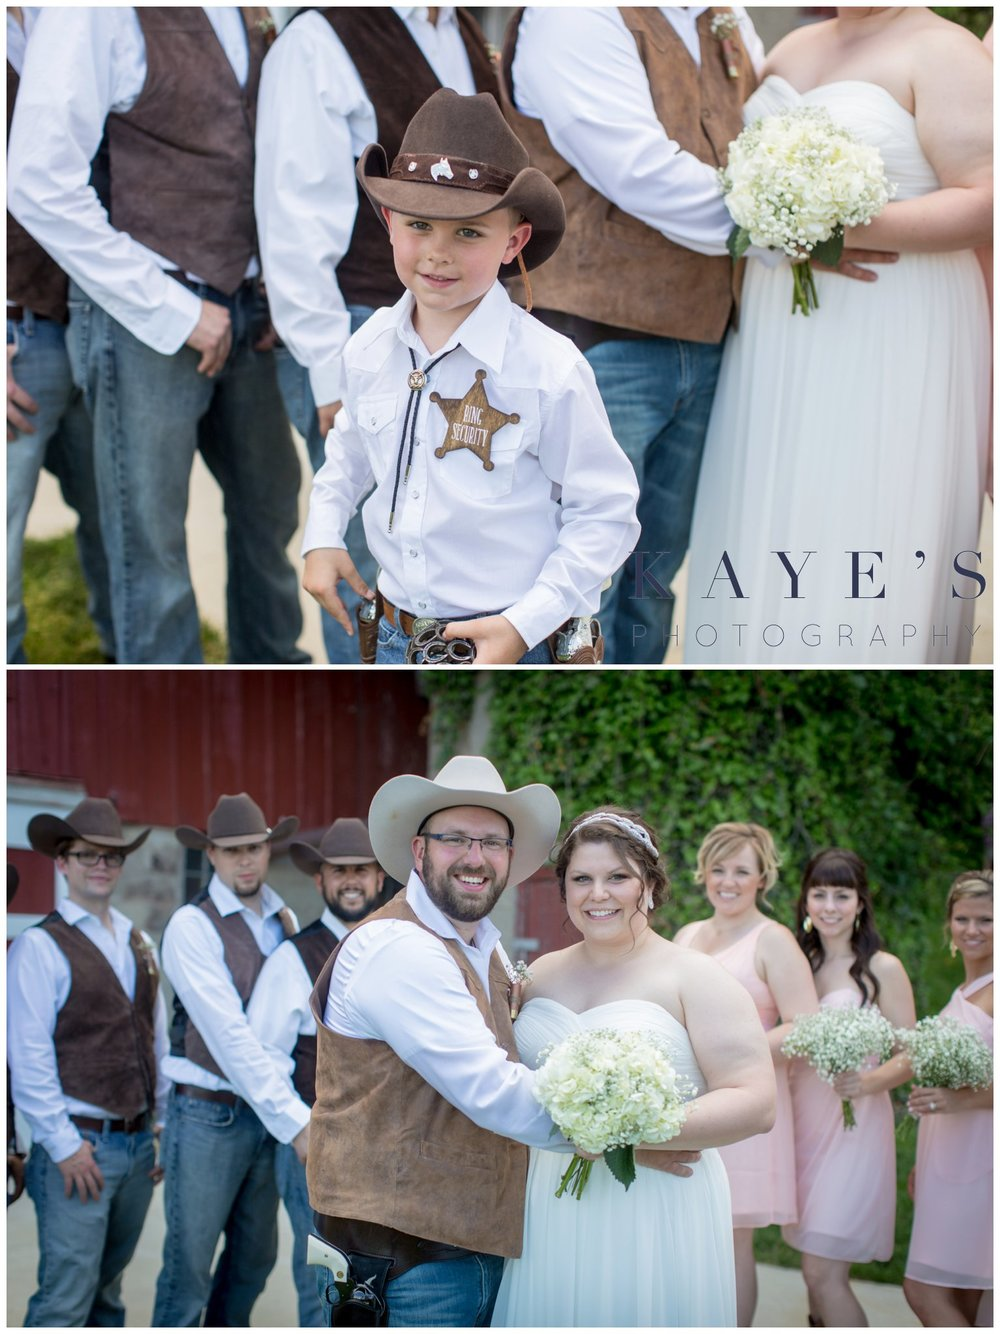 Hudsonville Michigan Wedding Photographer, Hudsonville Michigan Wedding Photography, The Old Wooden Barn Hudsonville Michigan Wedding photography, bride and groom with wedding party, bride and groom together, barn wedding, ring bearer